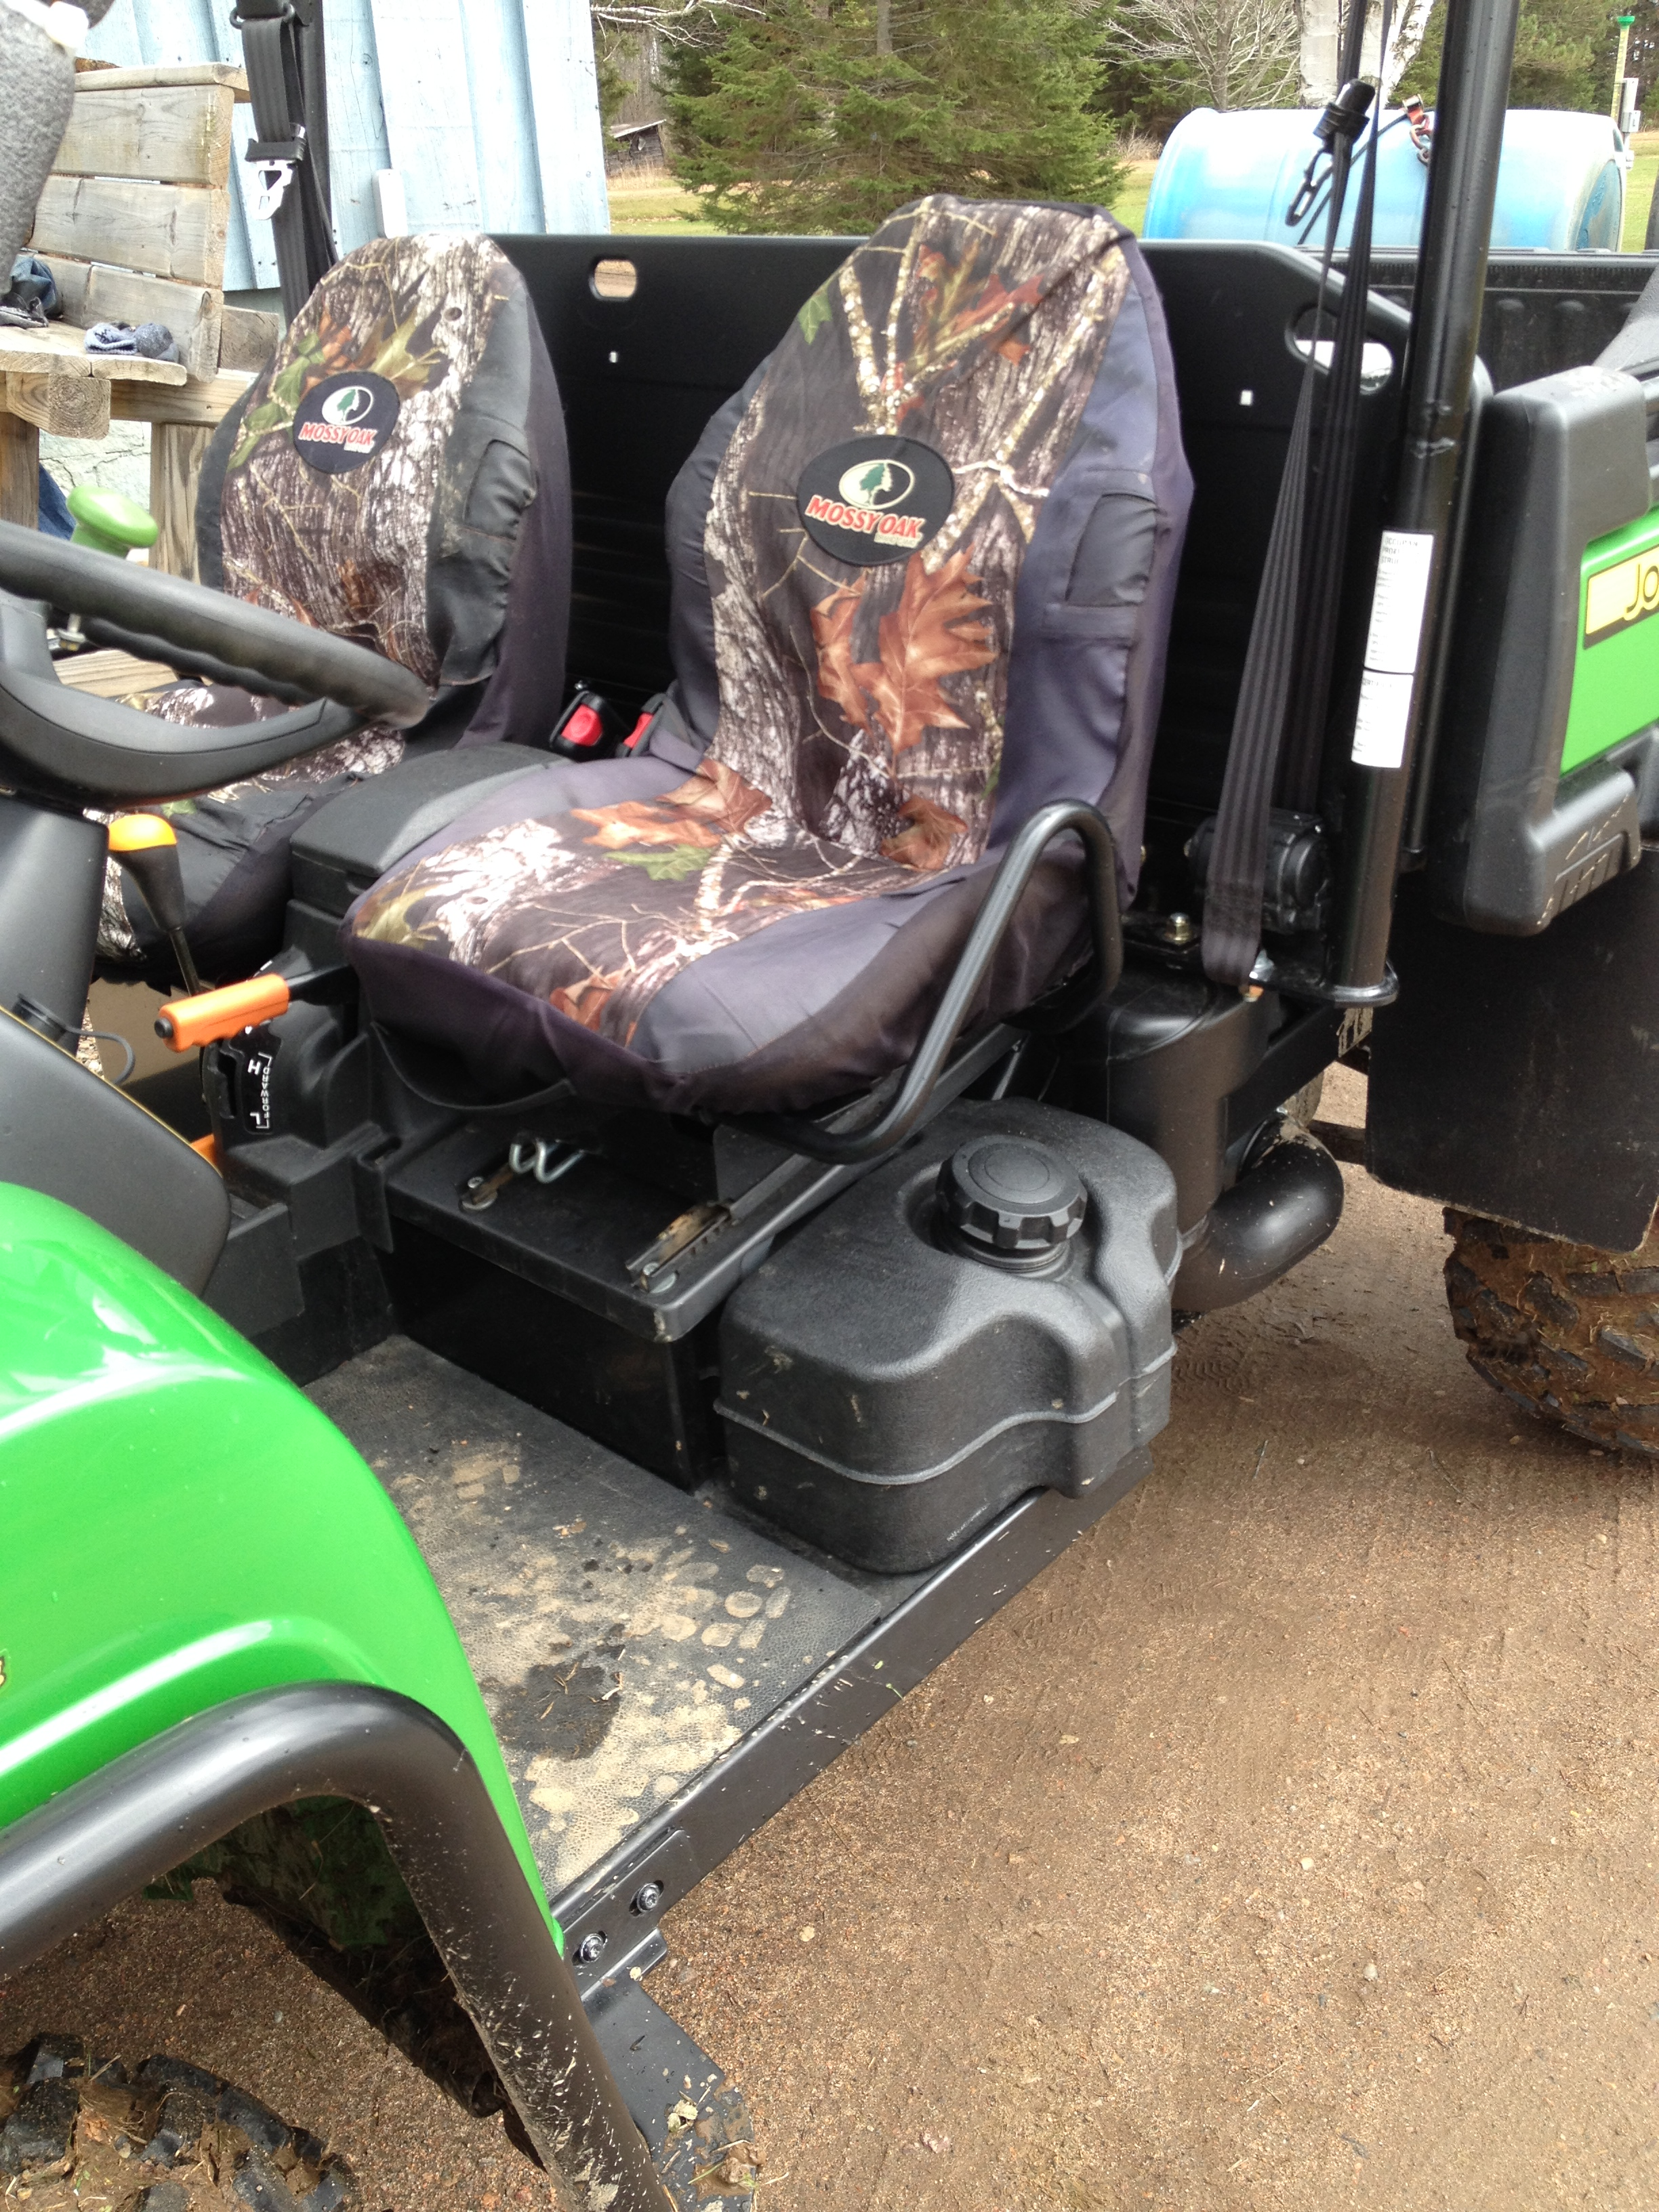 Tremendous John Deere Gator Bench Seat Covers Camo Machost Co Dining Chair Design Ideas Machostcouk